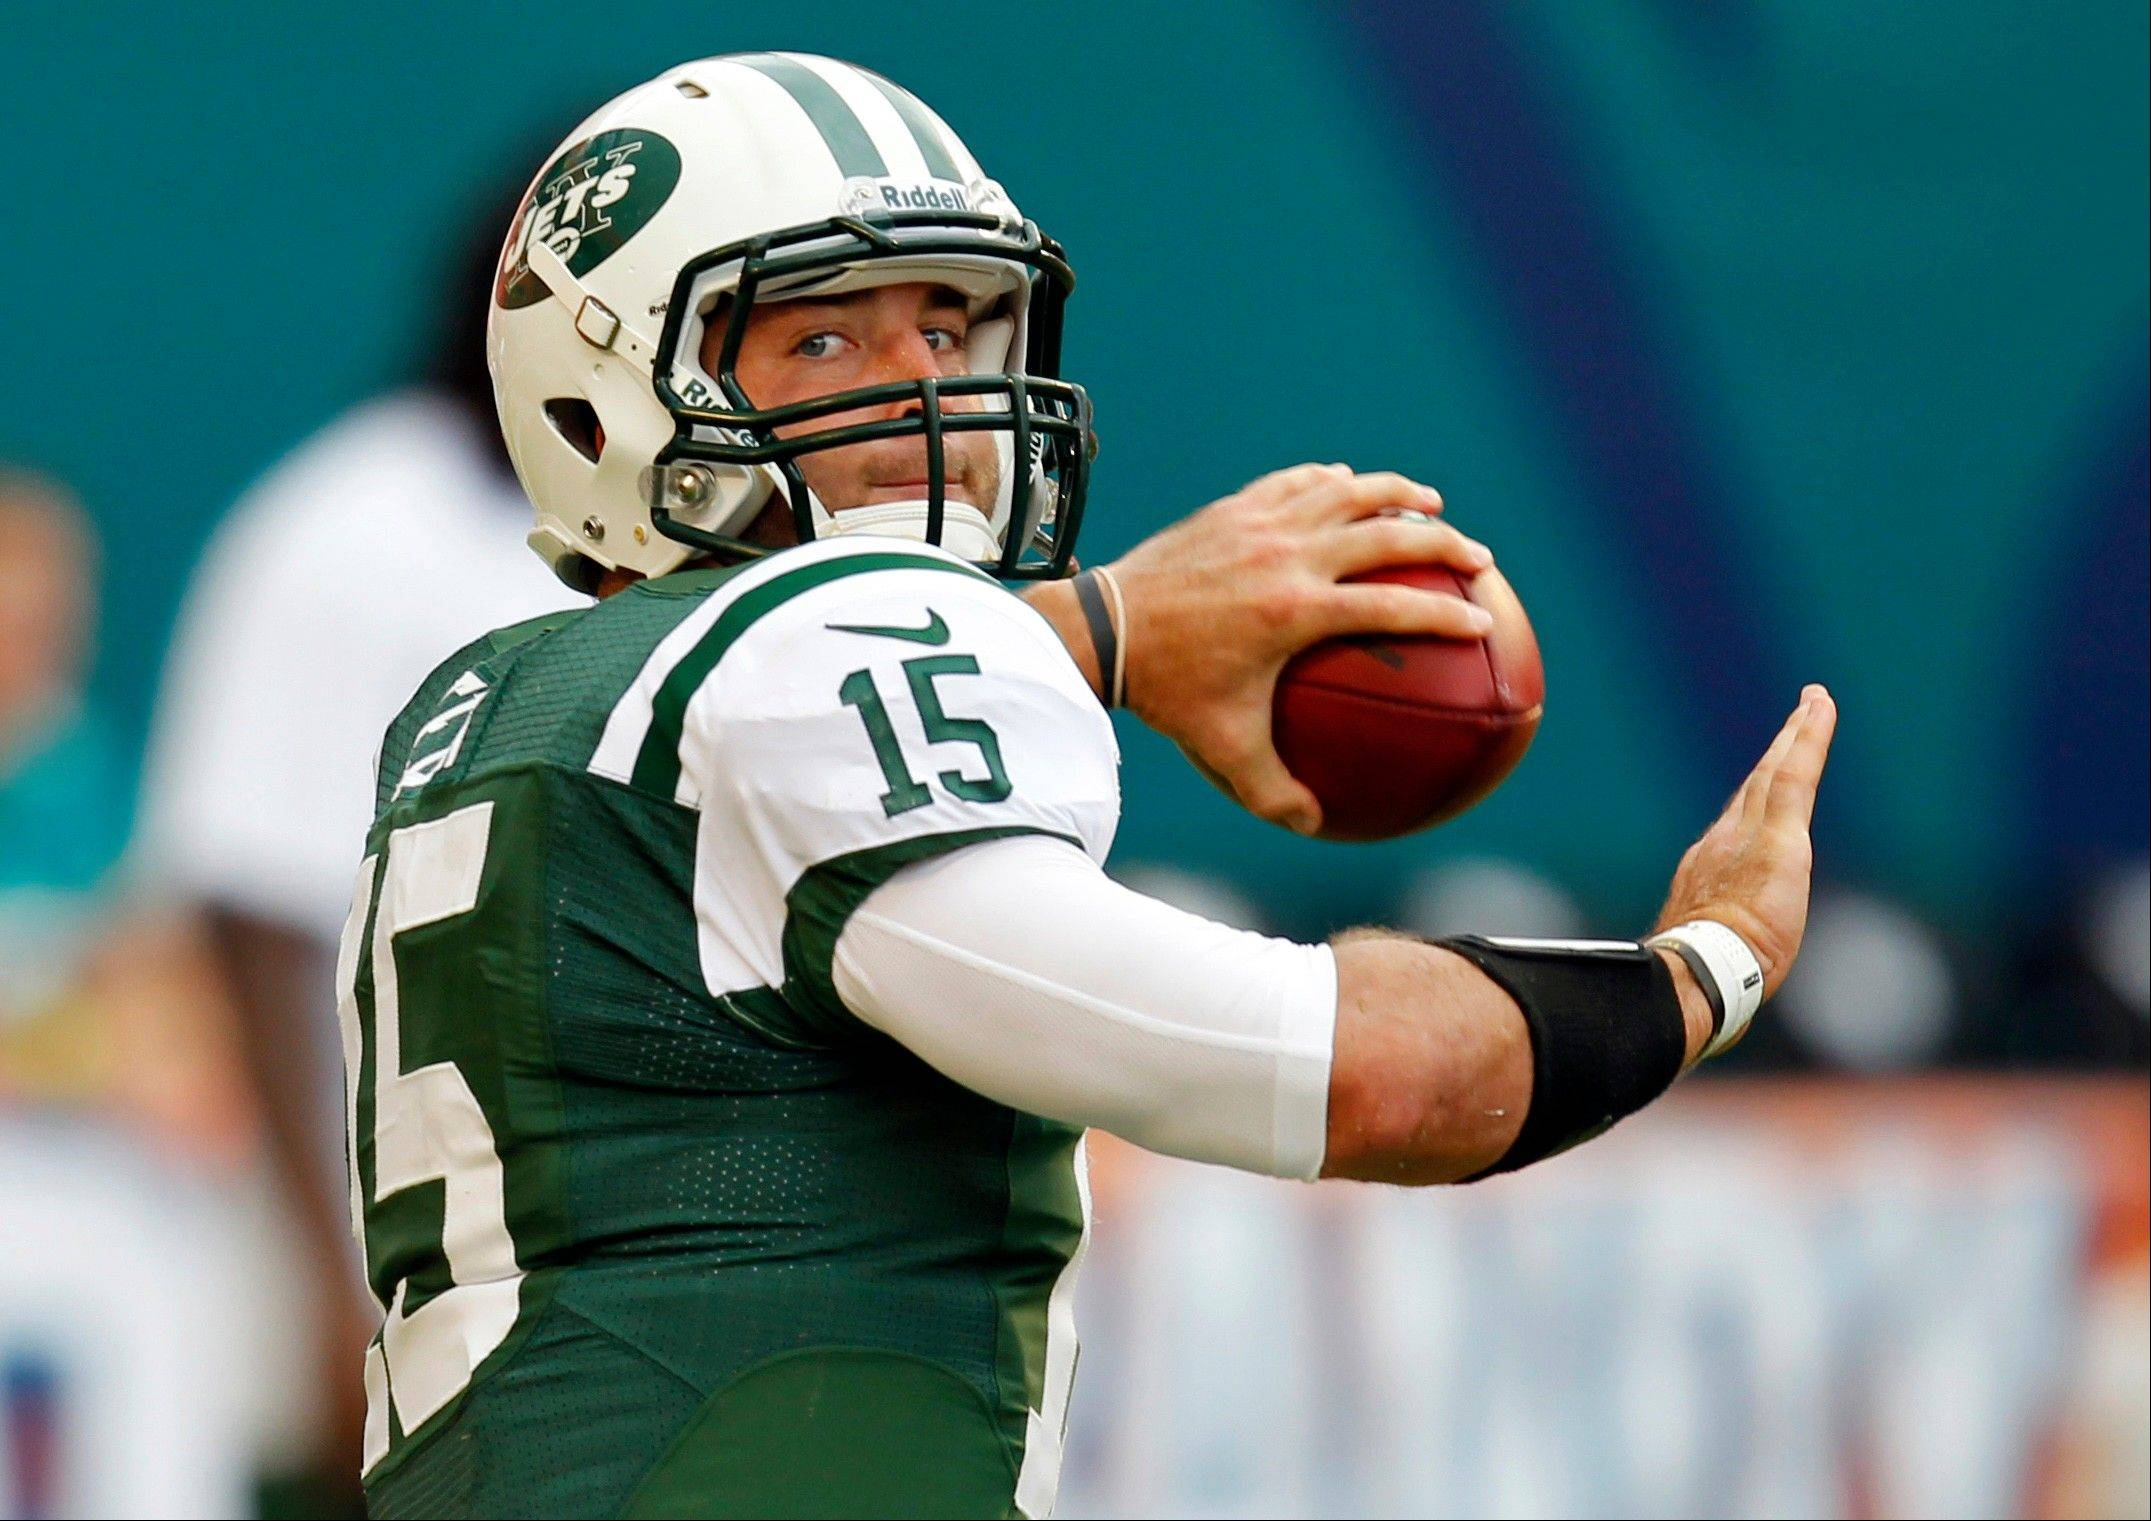 New York Jets quarterback Tim Tebow warms ups before a game earlier this season. New Yorkers wonder if �Tebow Time� should start Monday against the undefeated Houston Texans. With the Jets 2-2 coming off a disheartening 34-0 loss to San Francisco, fans are ready for a change, ready to find out if they got the fierce competitor, as advertised, or a publicity stunt.